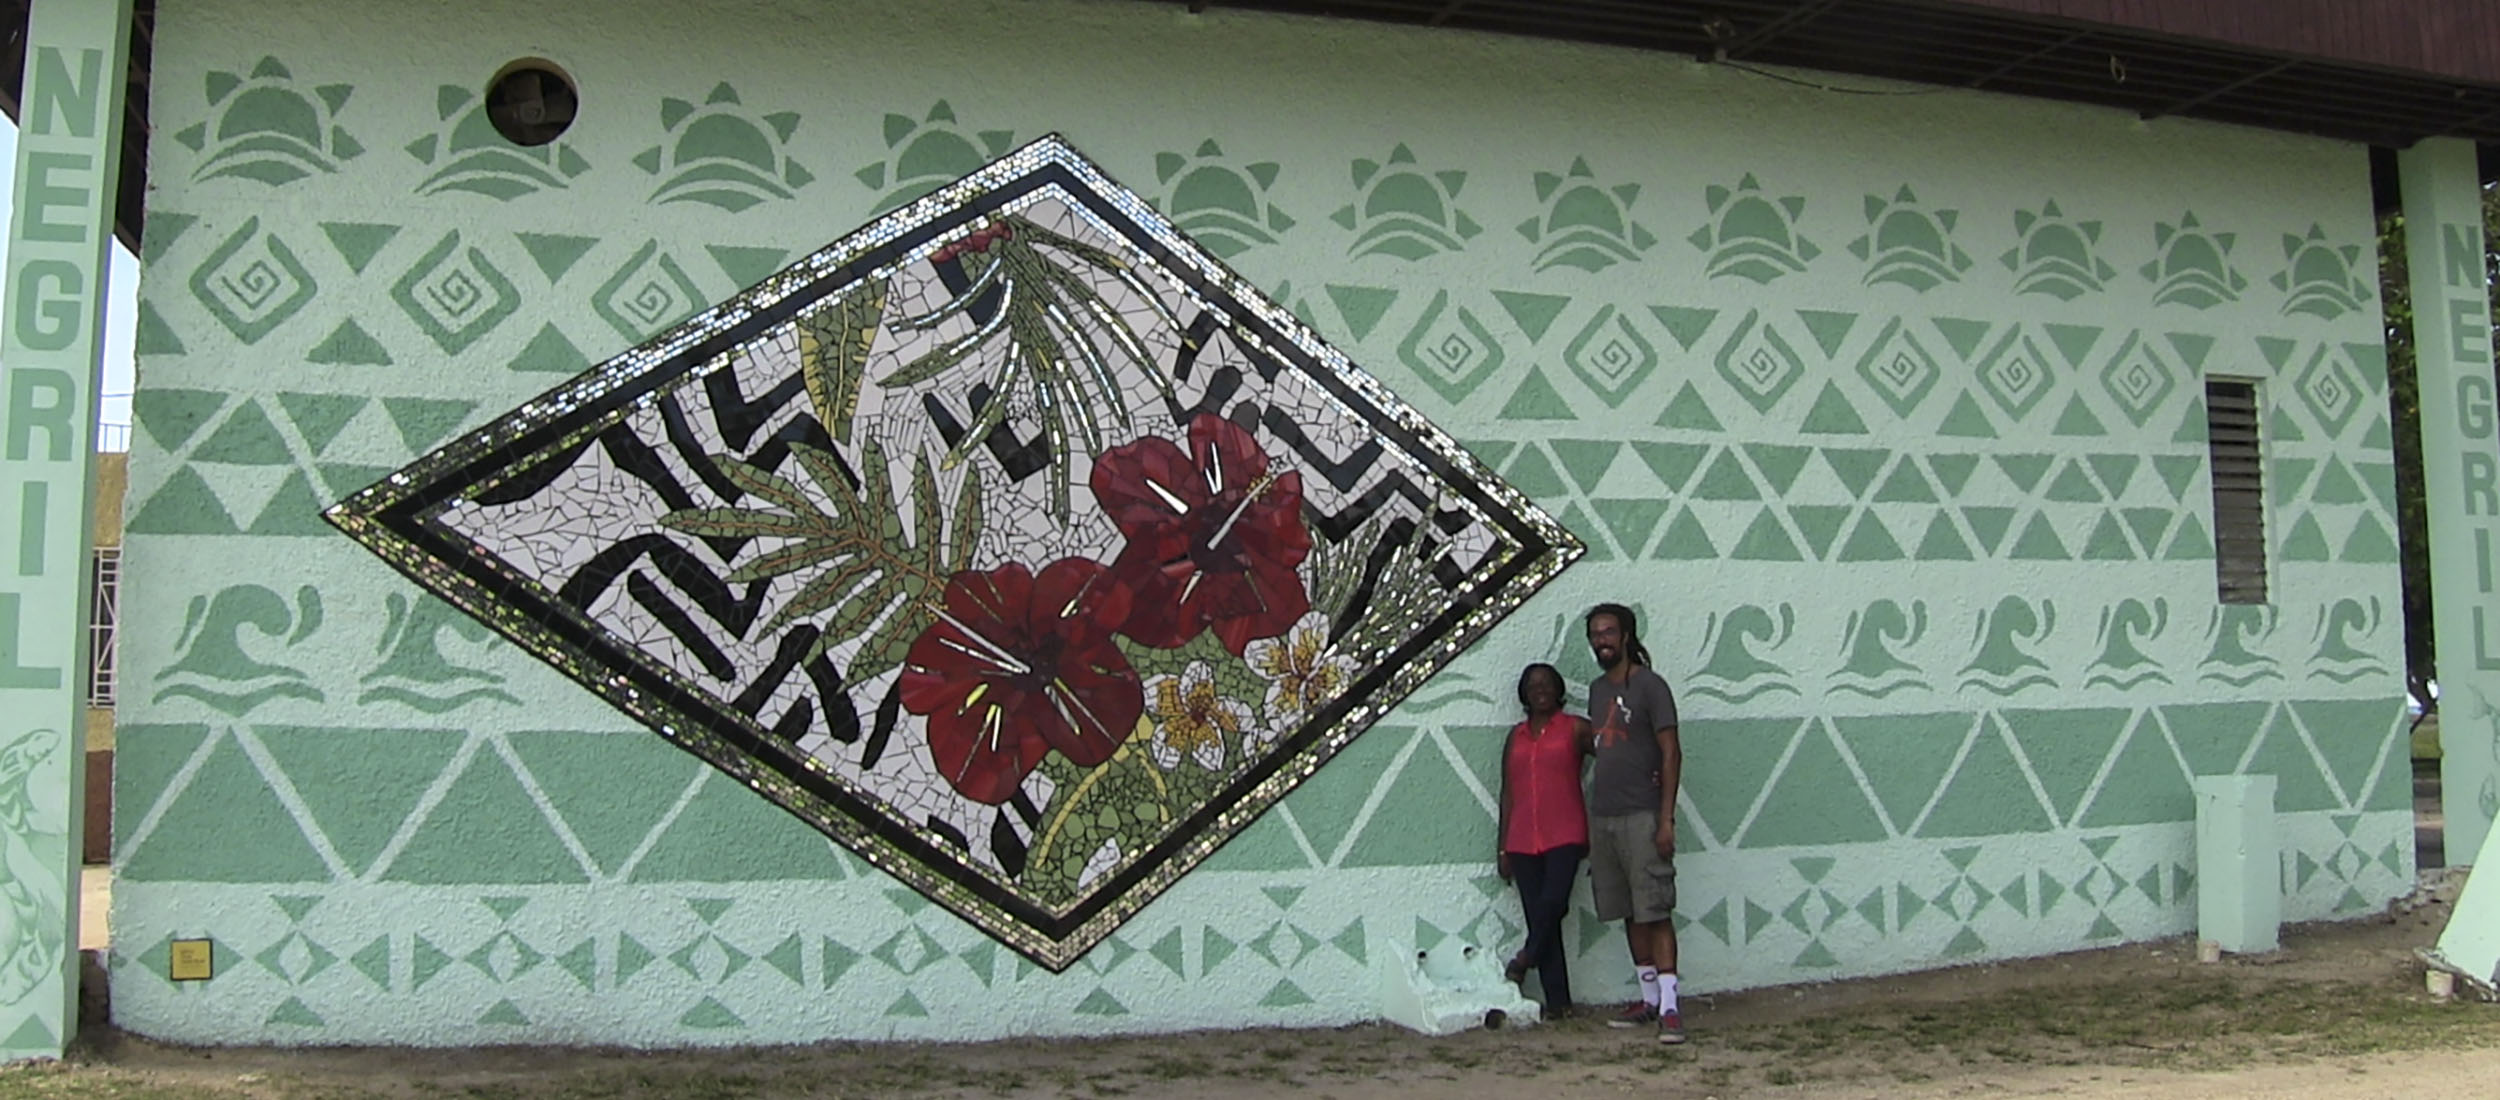 The New Artistic Mural @ the Negril Community Centre